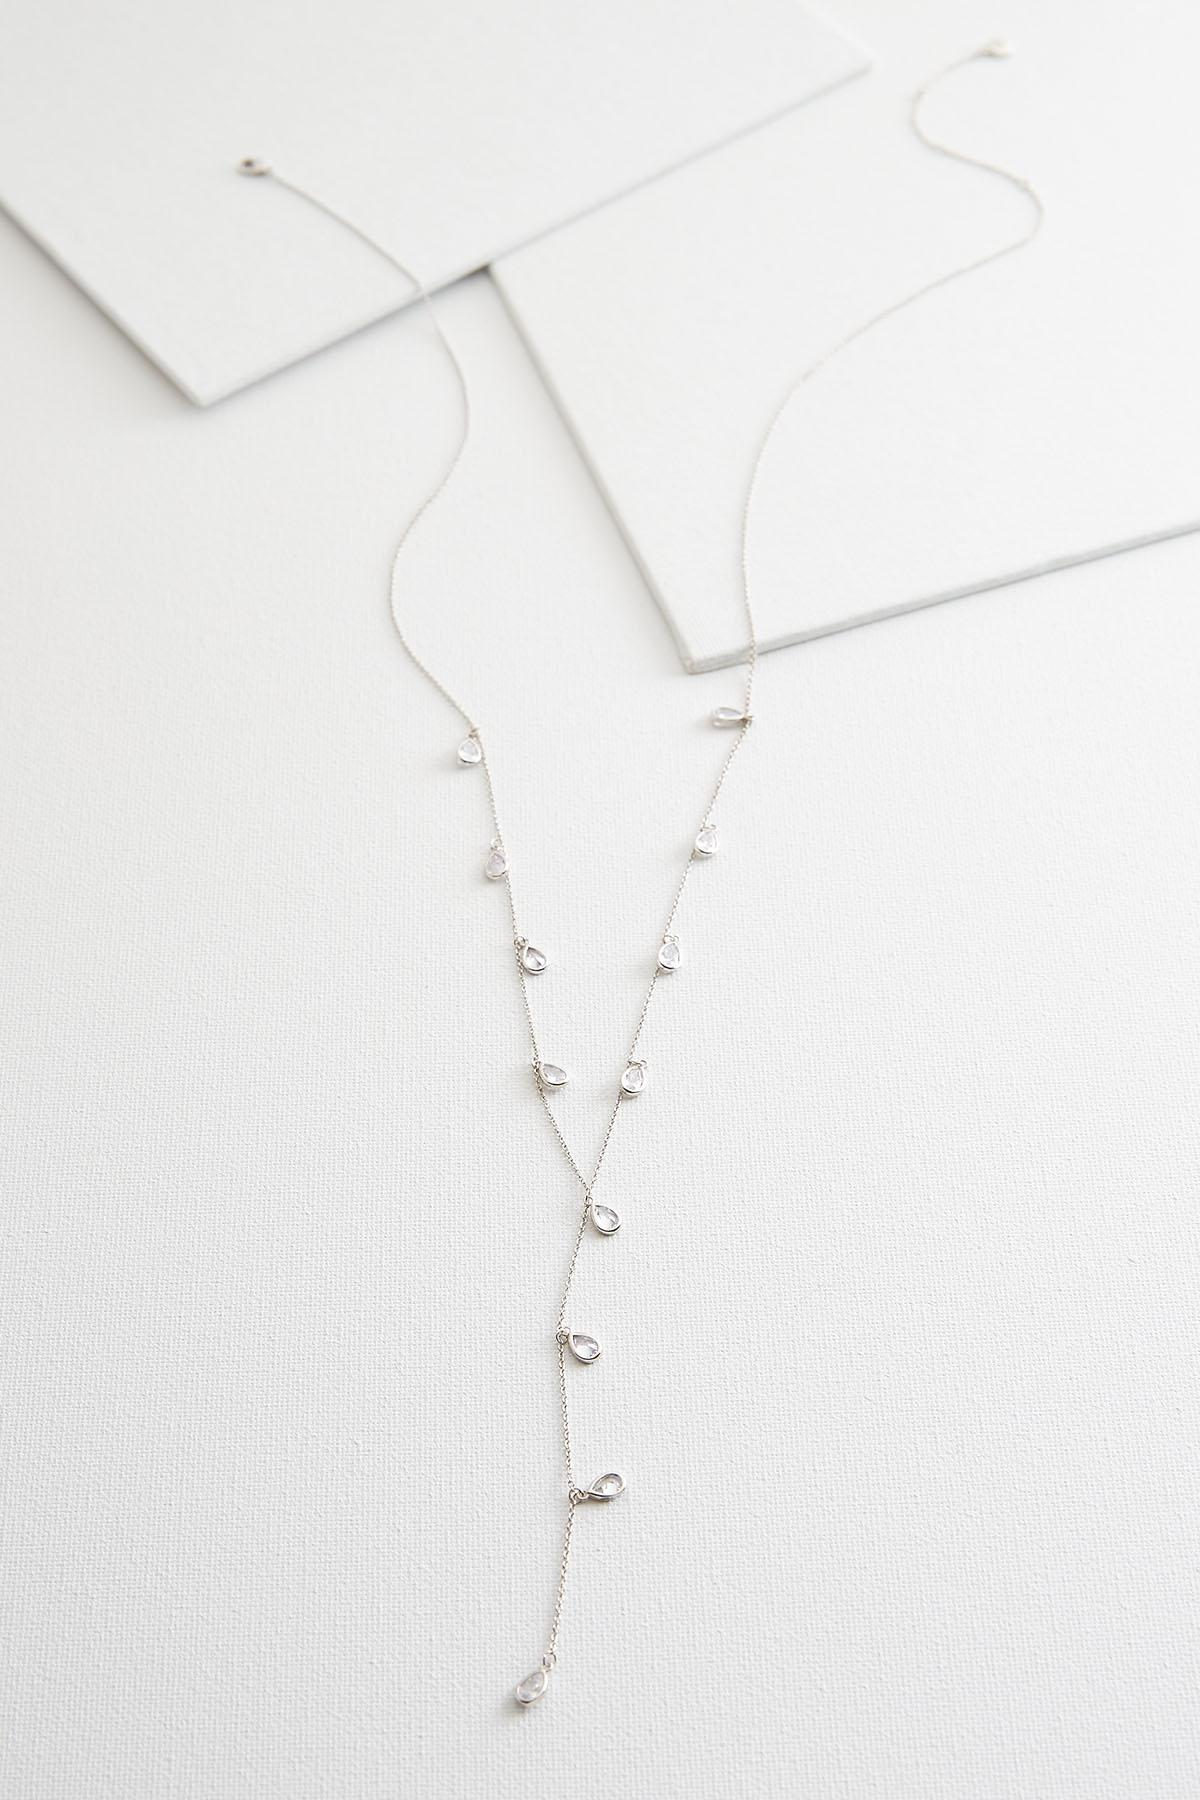 Tiny Tears Y- Necklace